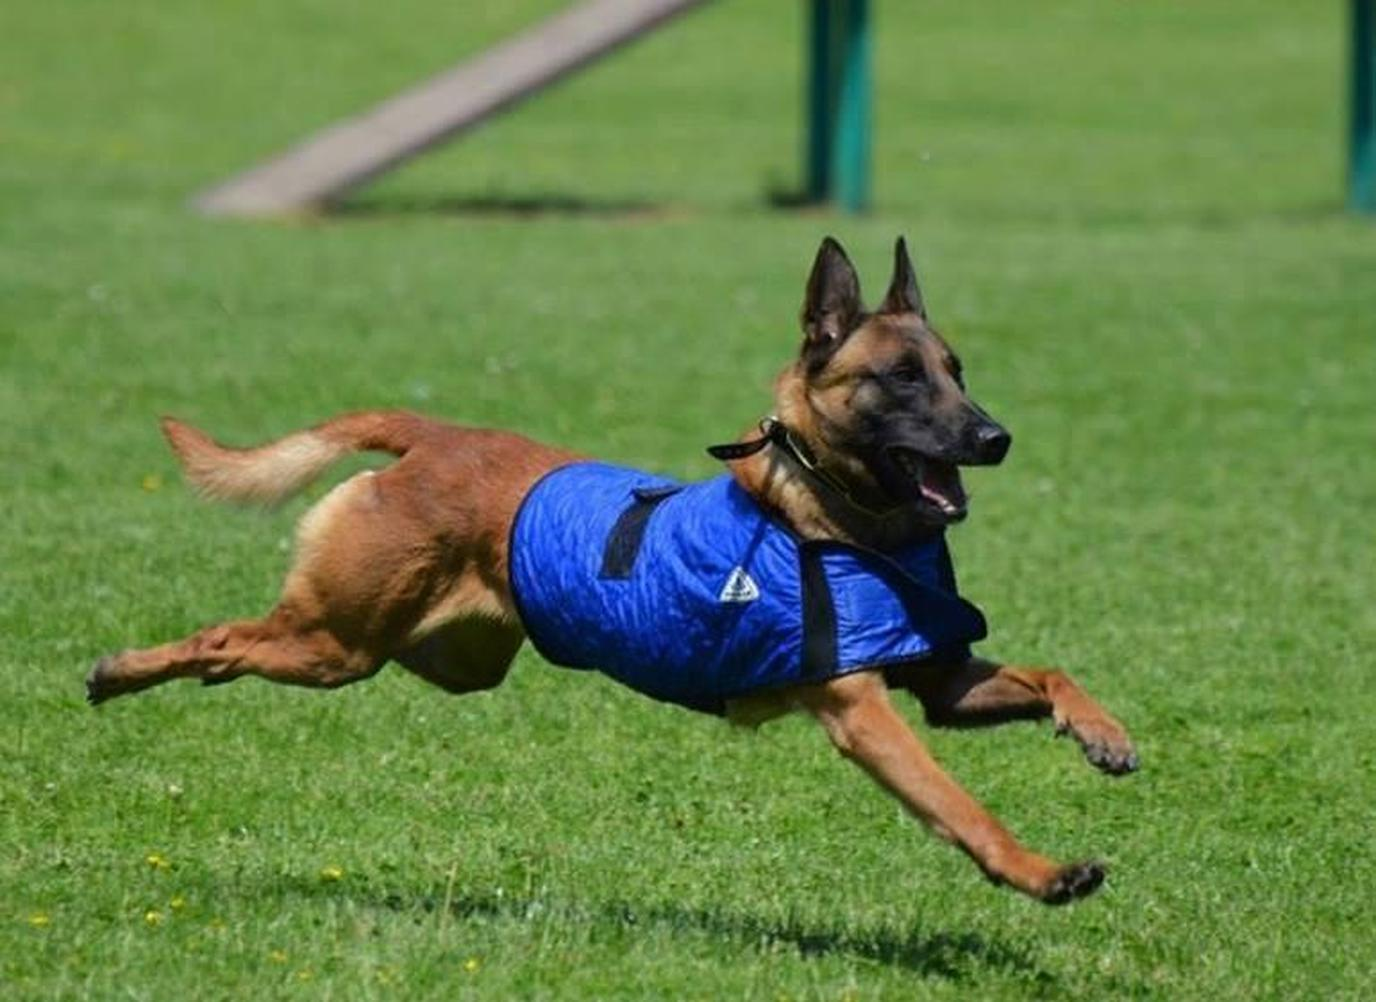 A German Shepherd Runs While Wearing the TechNiche Cooling Dog Coat.